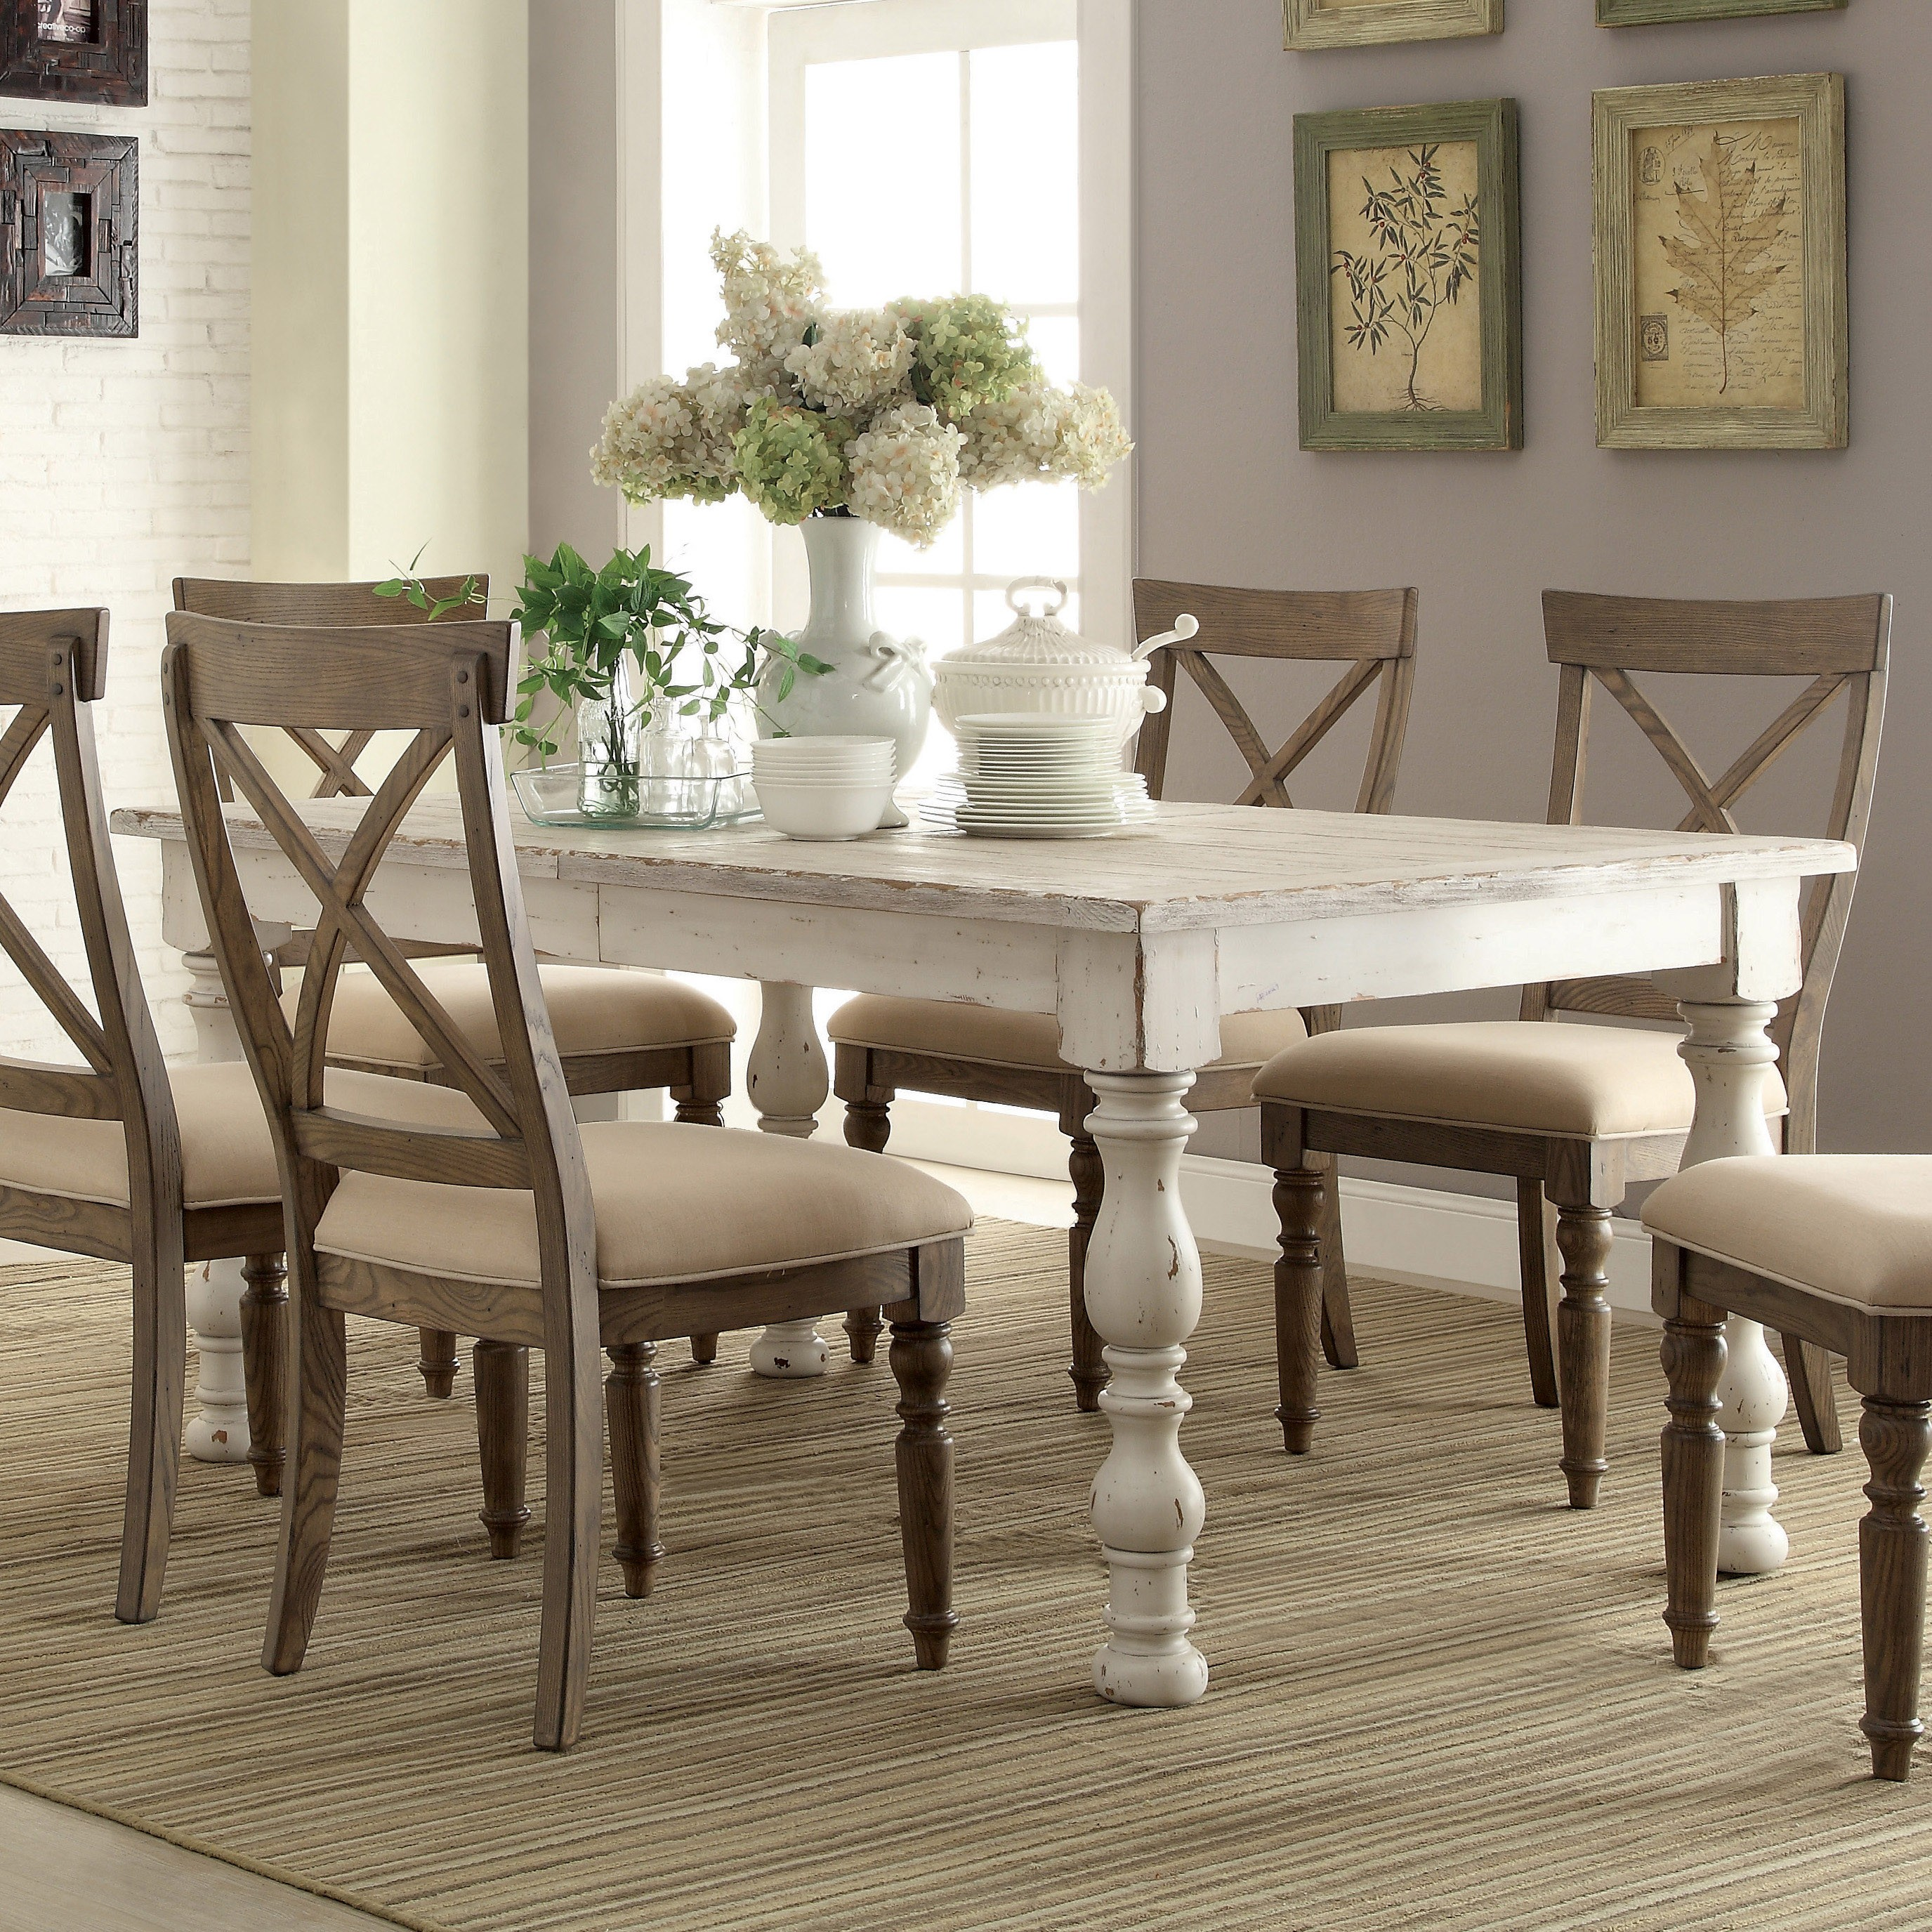 Ideas Of Grey Dining Room Natural Stone Carving Dining Table Base ...